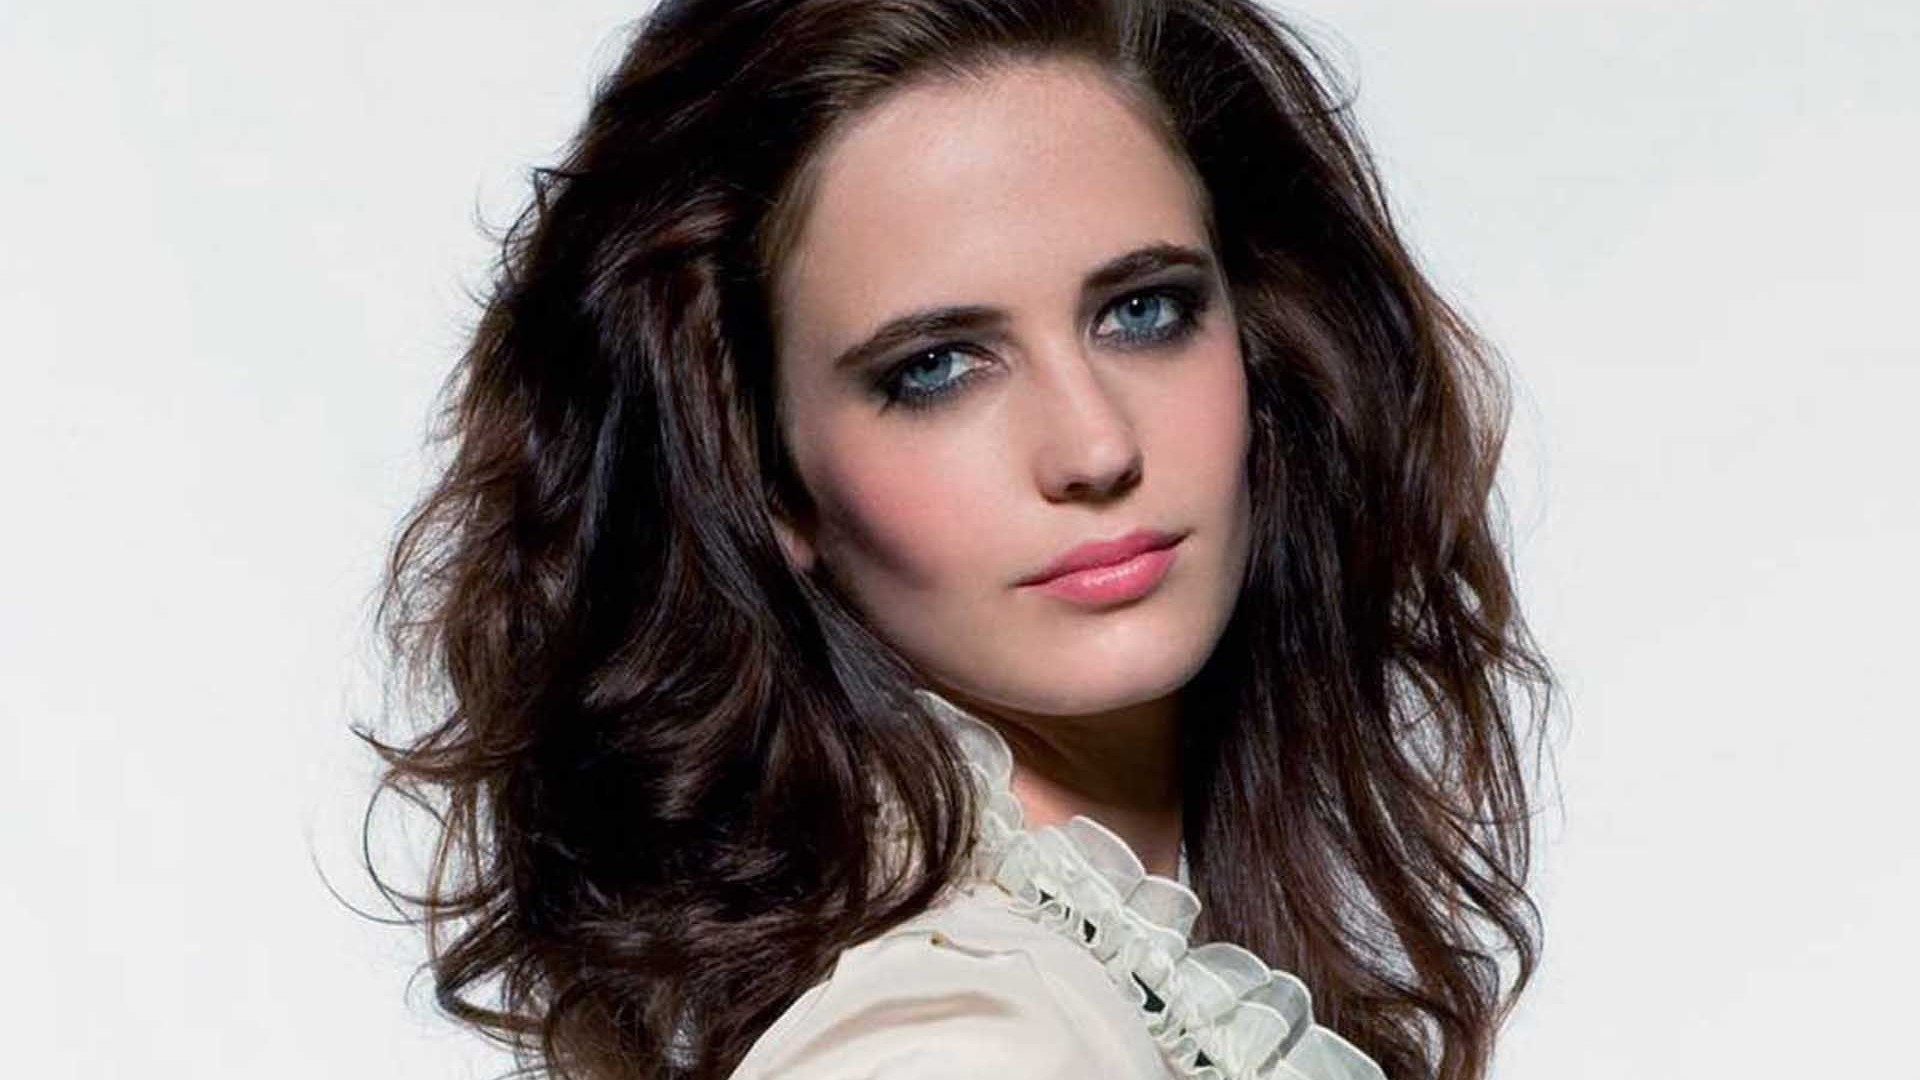 Desktop Eva Green Amazing Attracitive Eye Face Pose With Hair Style Hd Free Mobile Background Wallpaper